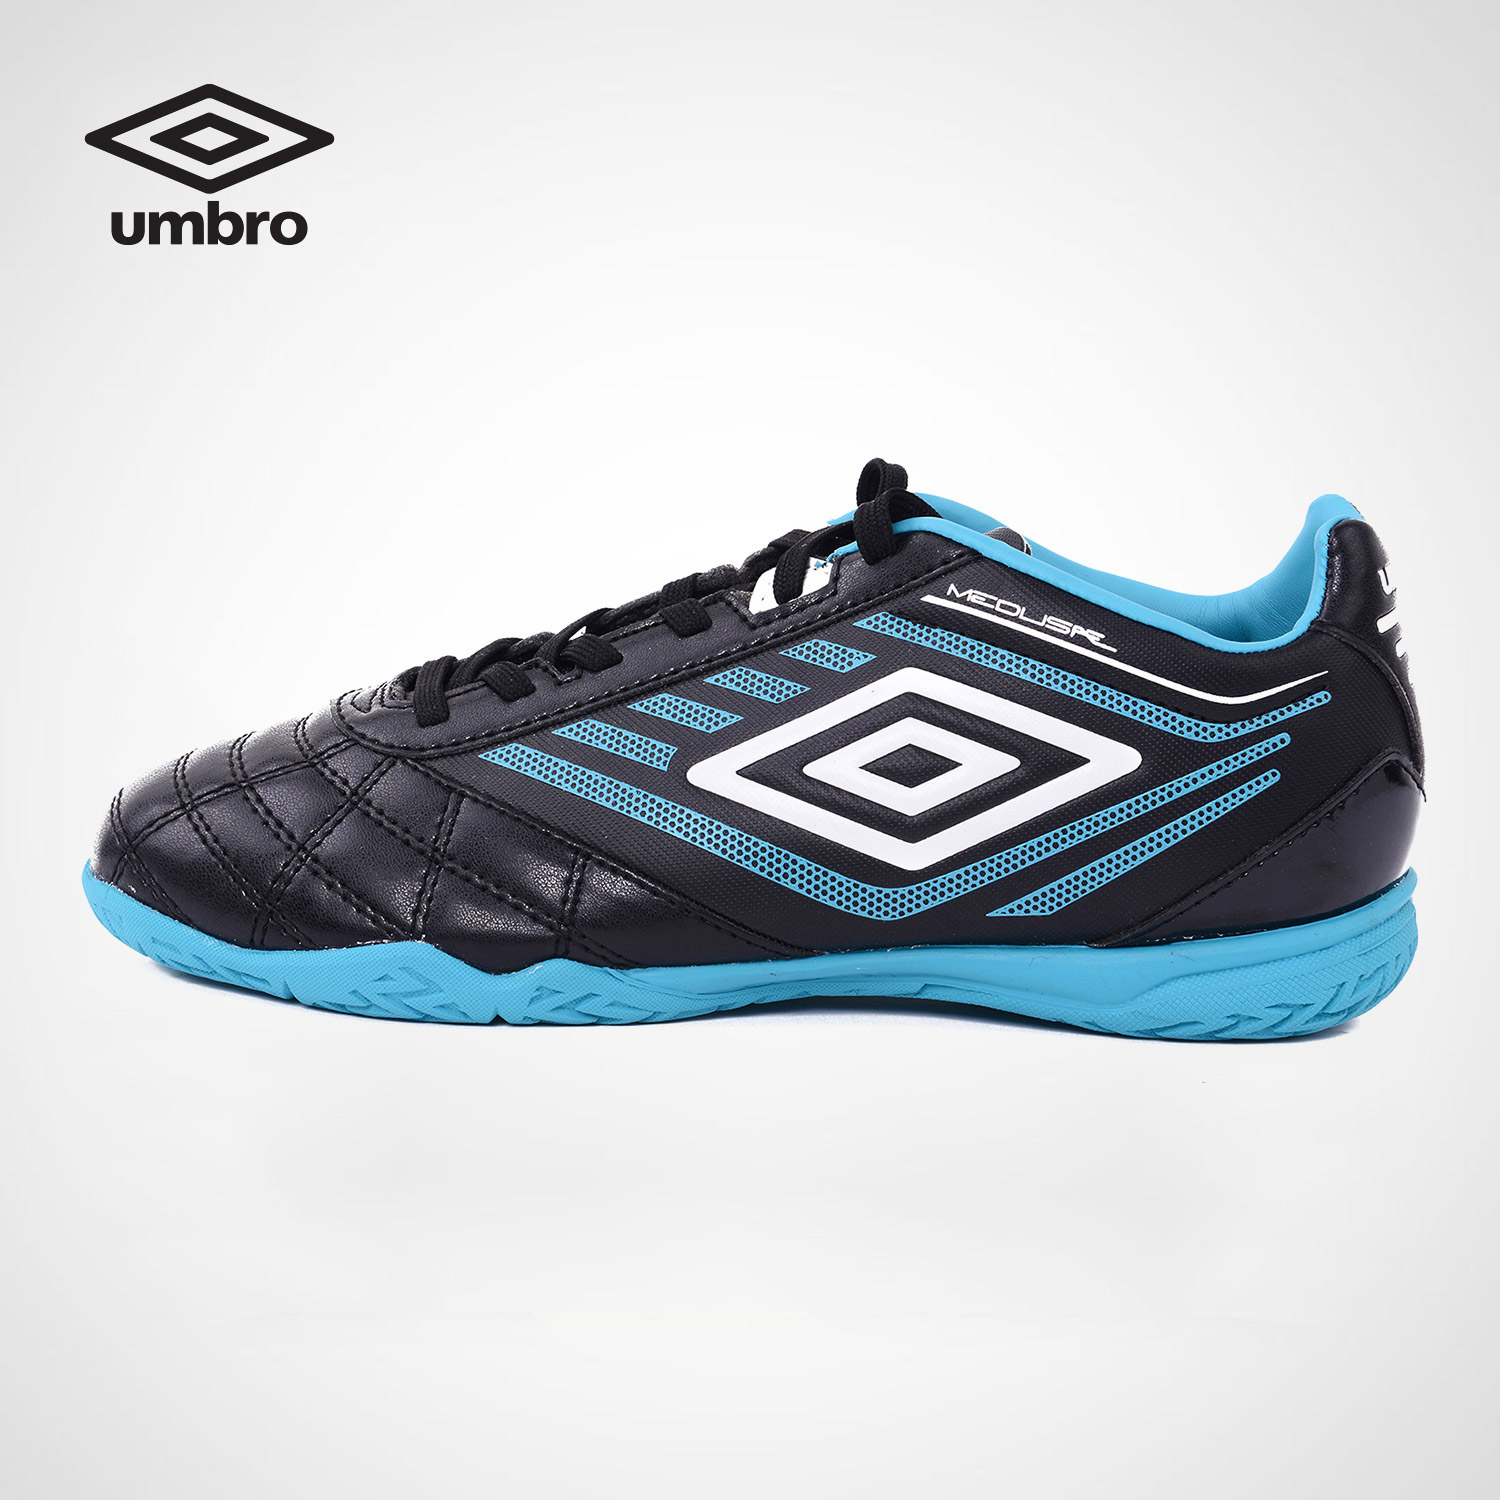 Umbro Soccer Shoes Football Mens Shoes Medusa Competition Training Shoes For Soccer Indoor Football Shoes Ucb90143 umbro football shoes men breathable rubber antiskid hg professional competition training football boots soccer shoes ucb90129